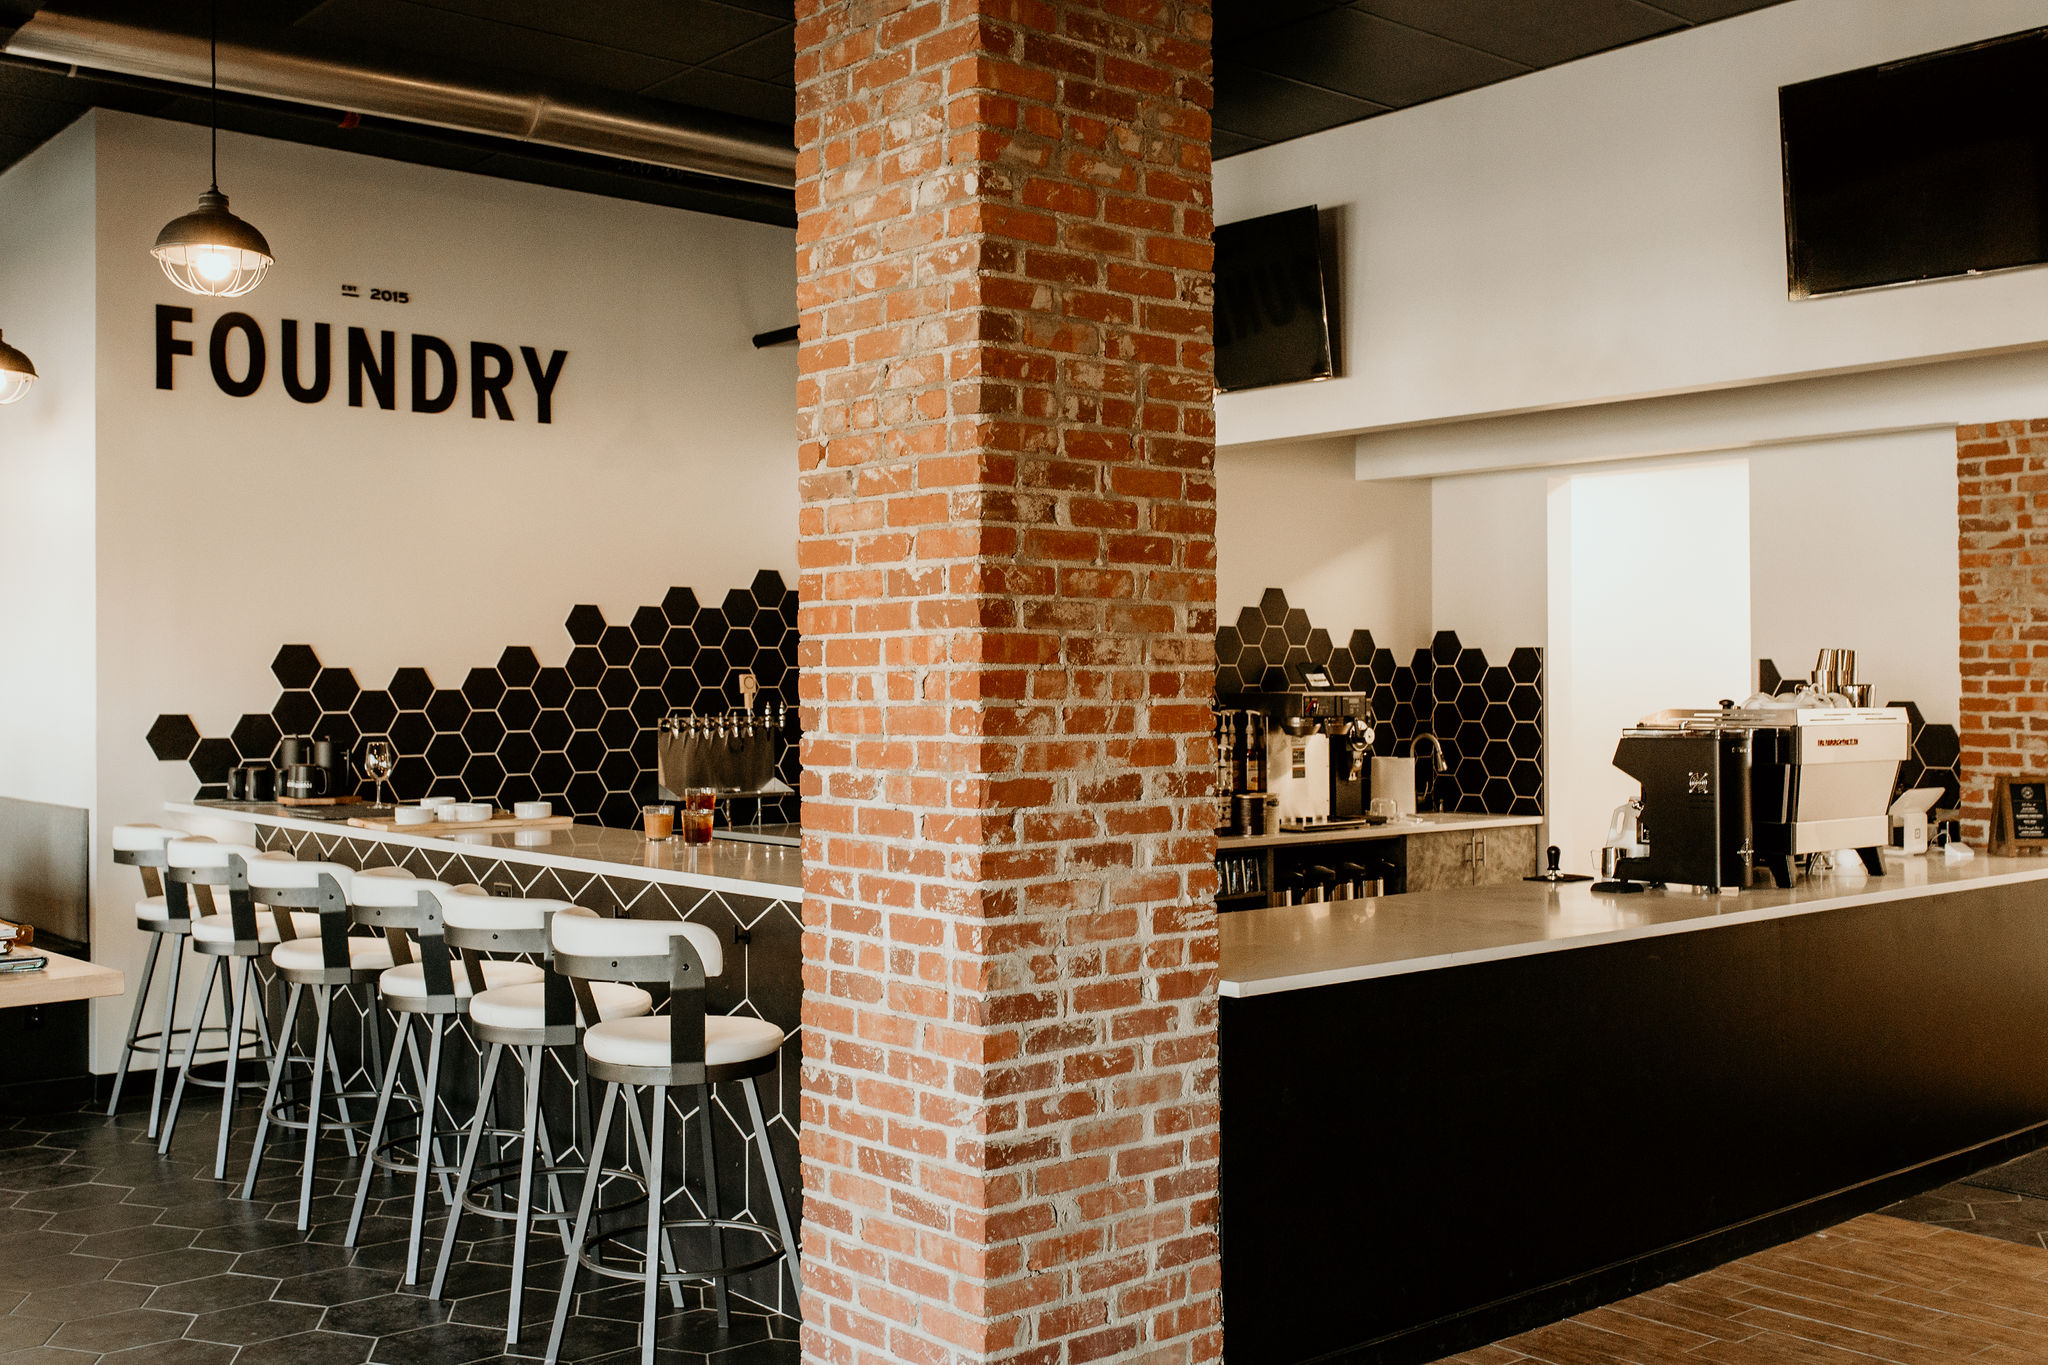 The Foundry Coffee Shop